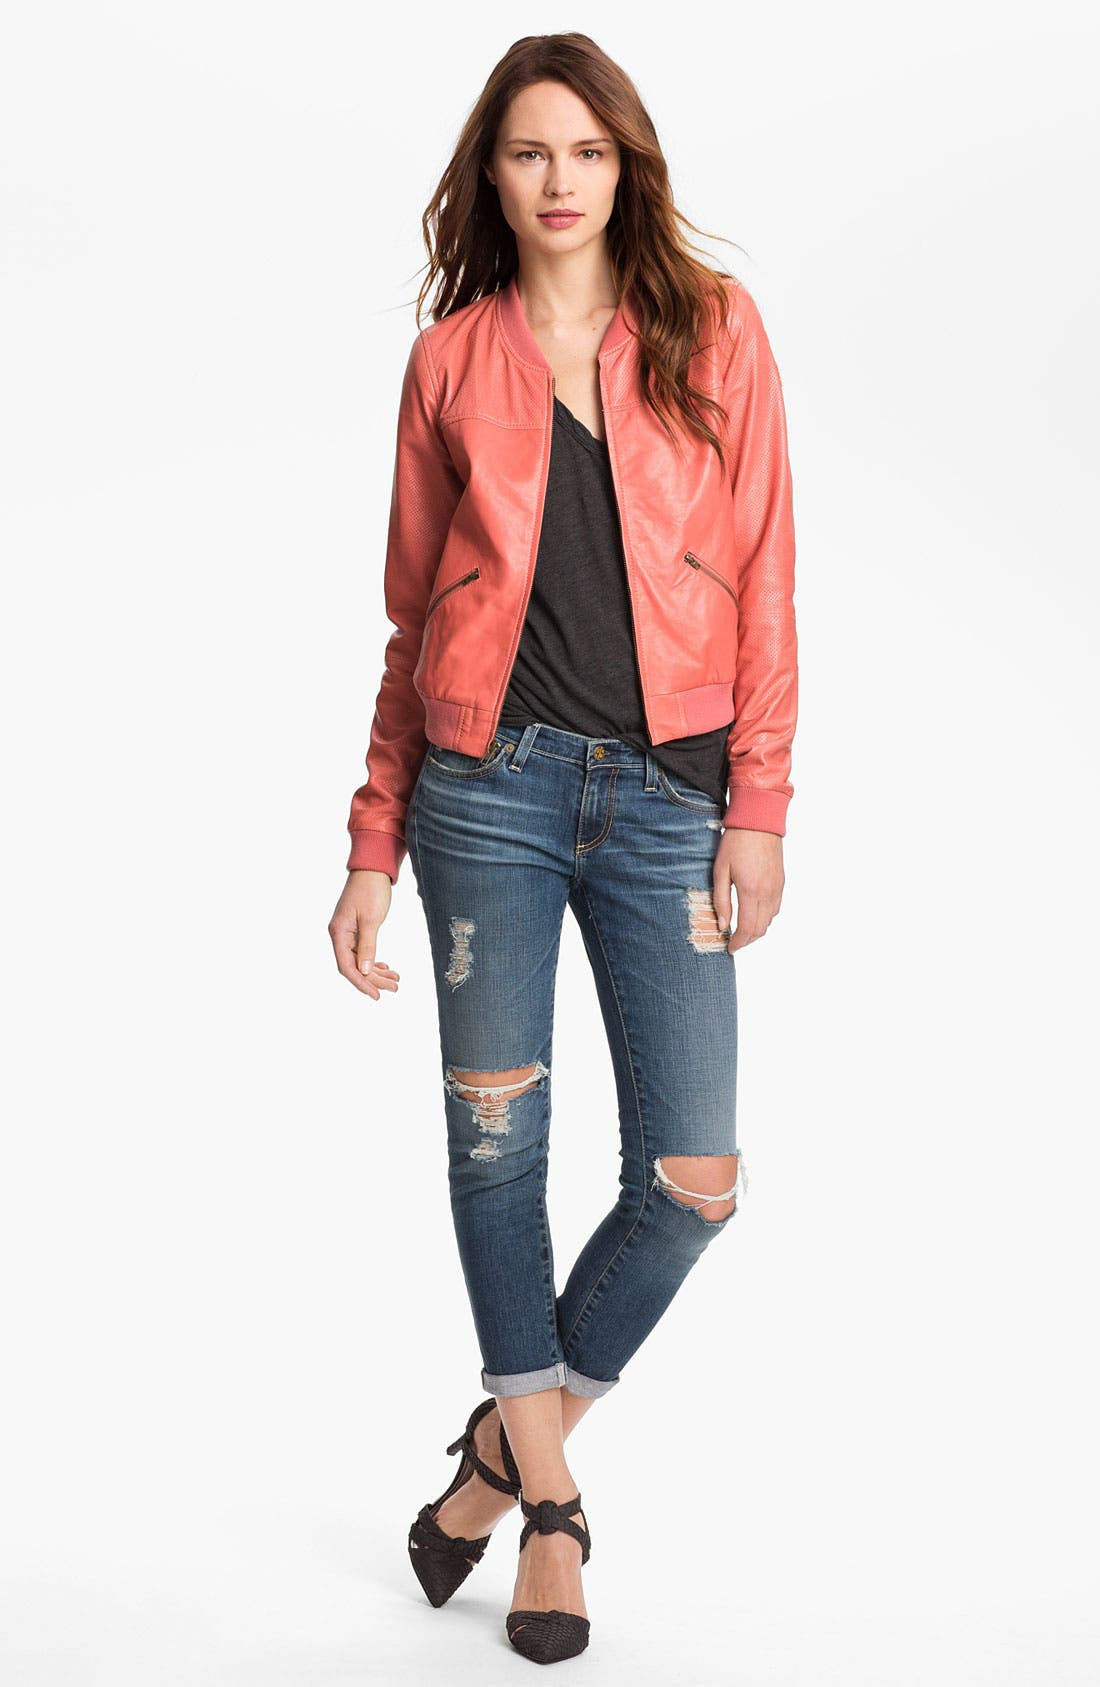 Alternate Image 1 Selected - Trouvé Bomber, James Perse Tee & AG Jeans